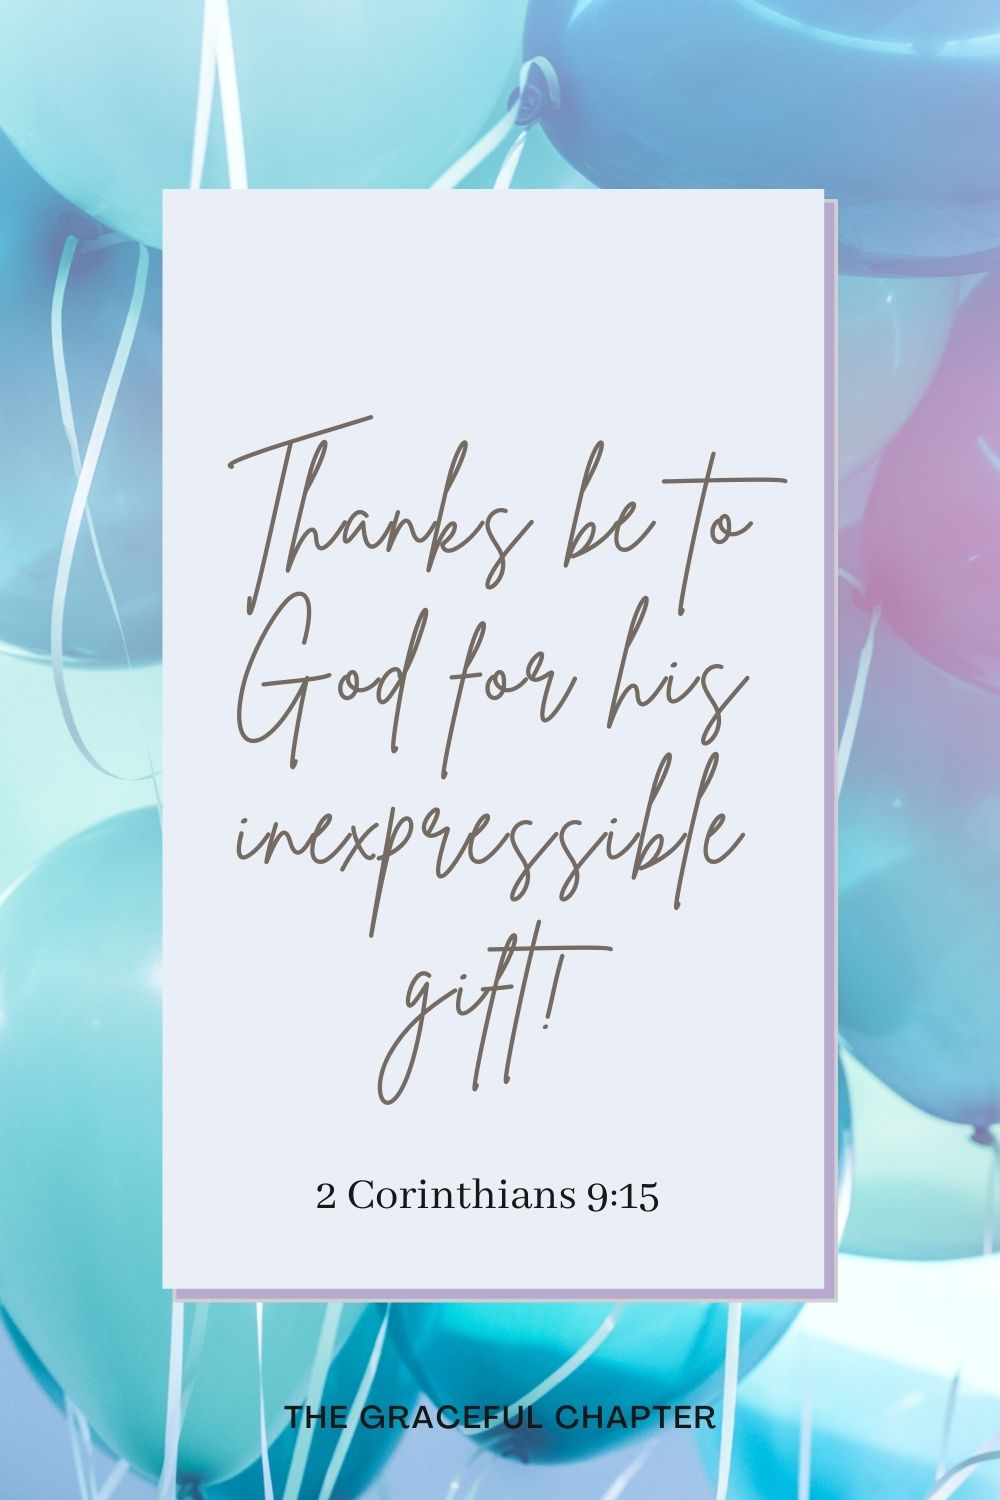 Thanks be to God for his inexpressible gift! 2 Corinthians 9:15